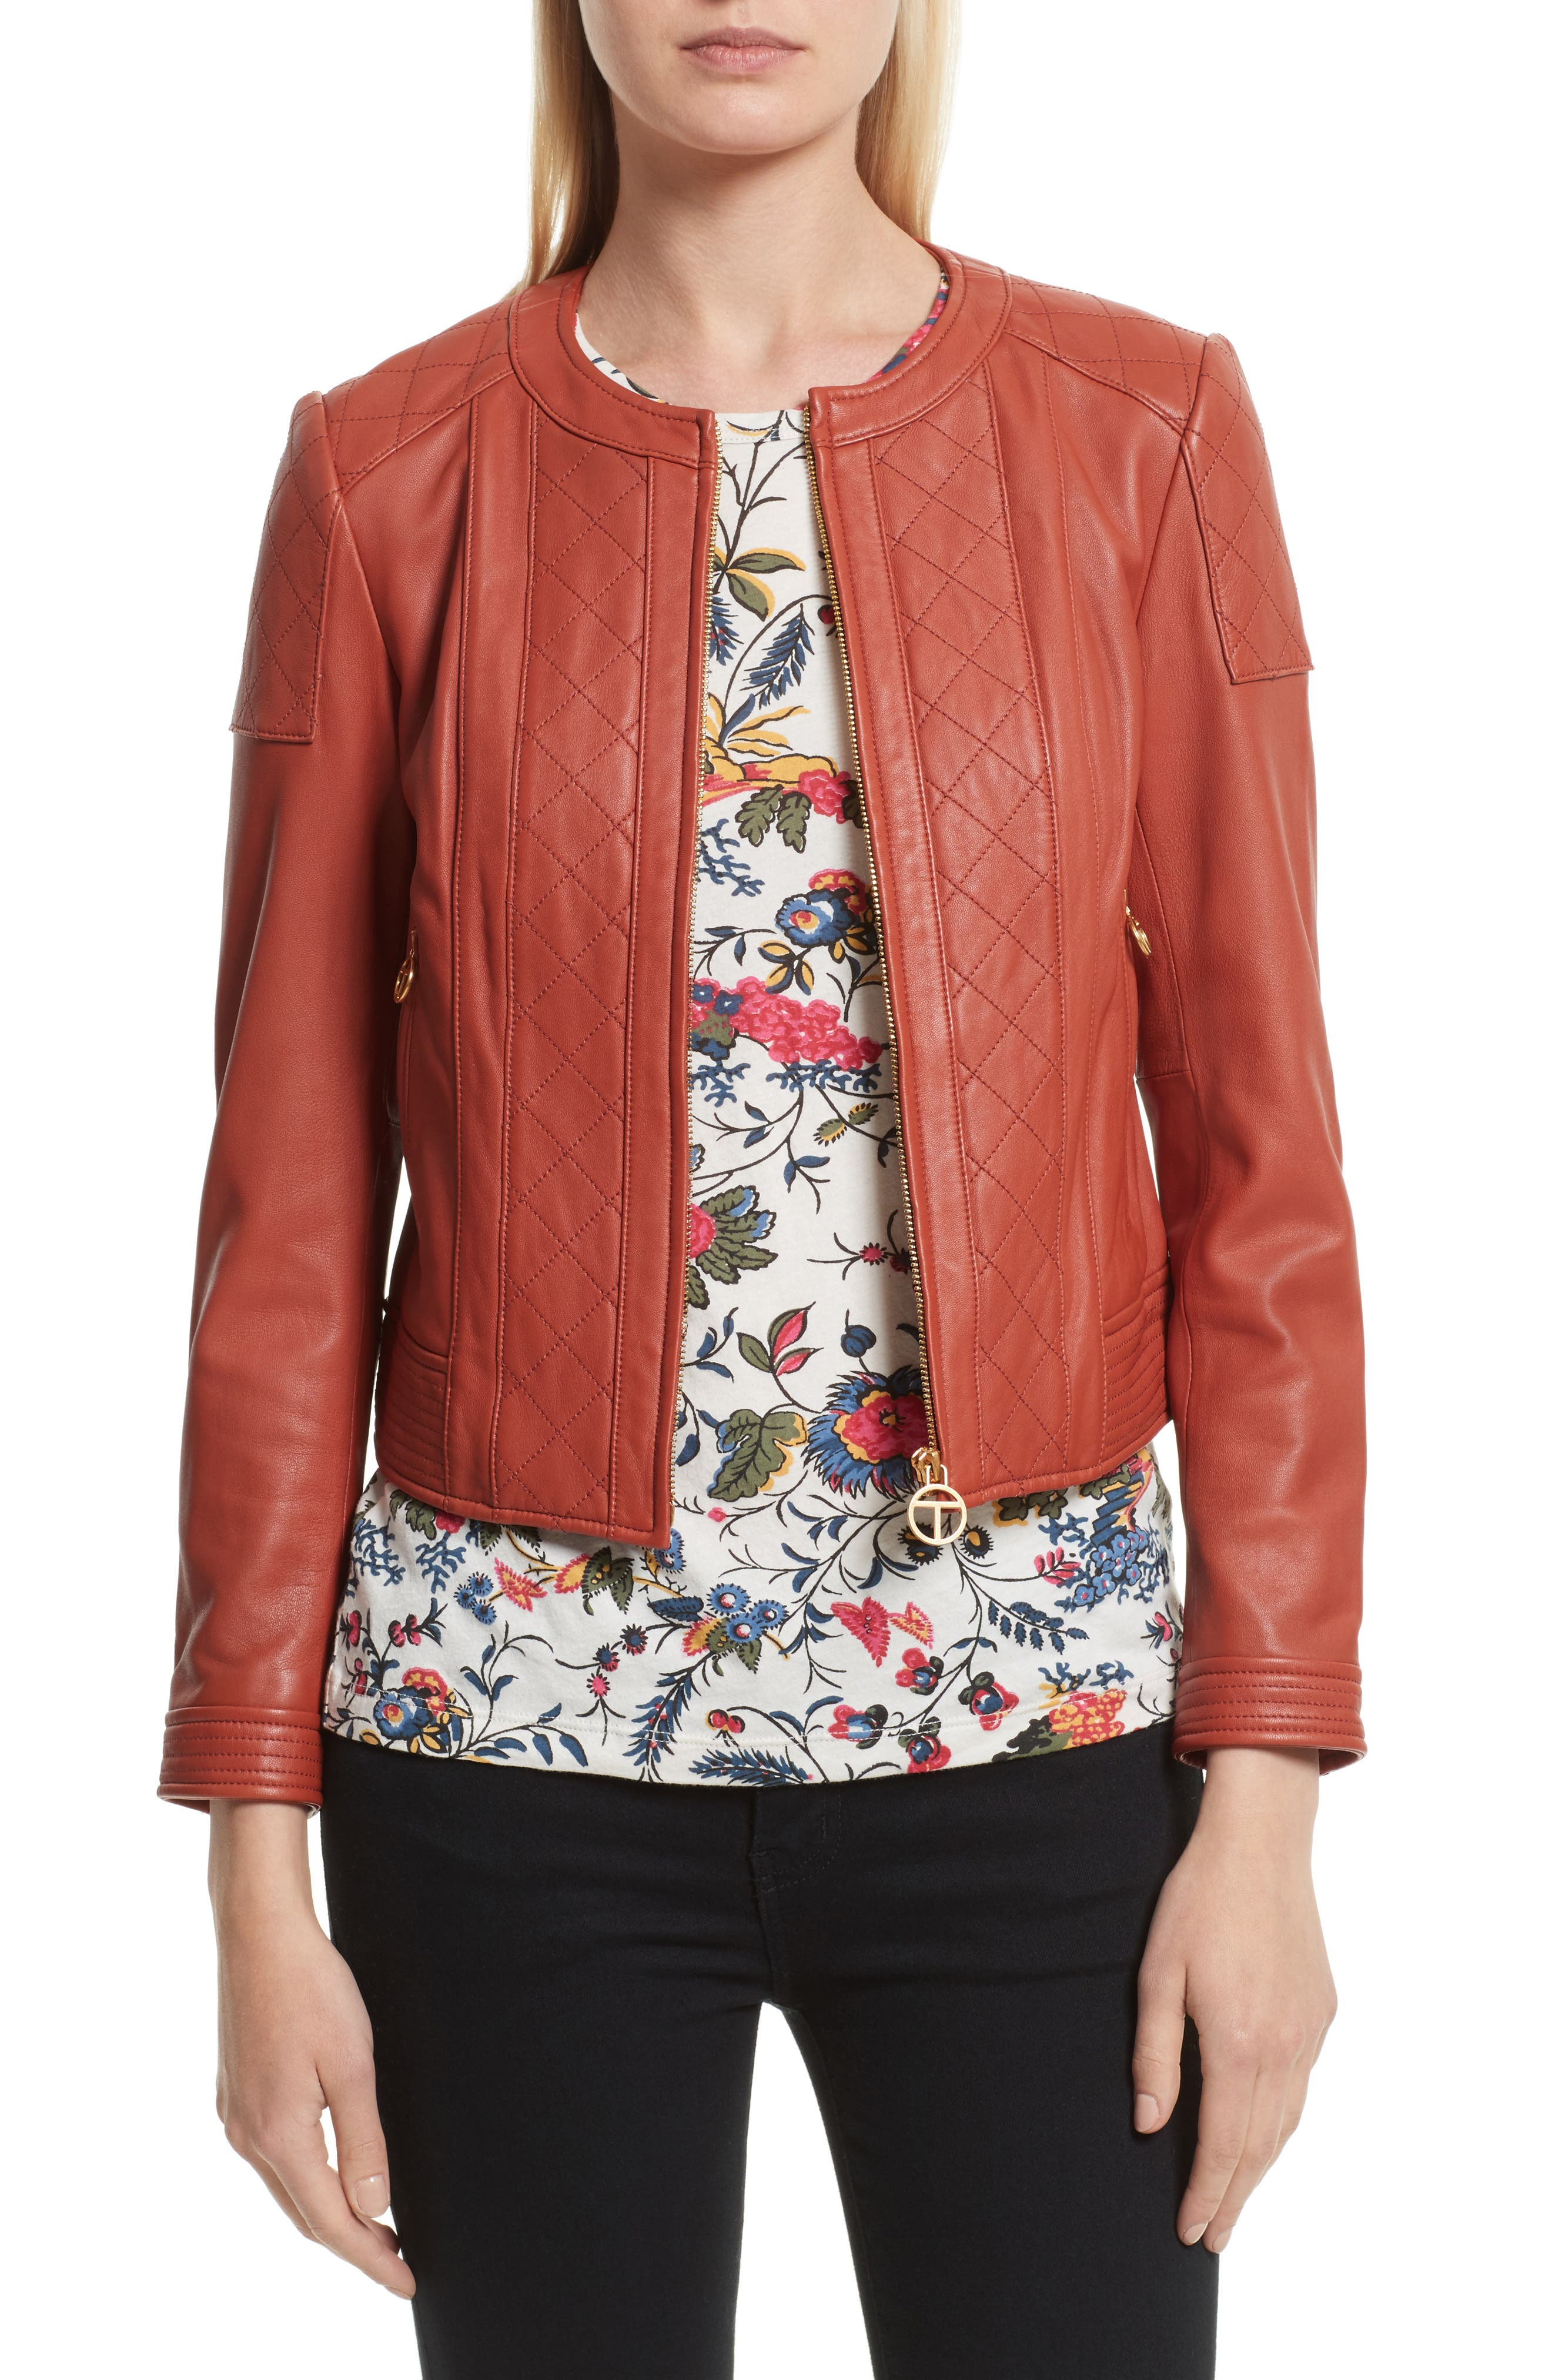 Ryder Leather Jacket,                             Main thumbnail 1, color,                             232